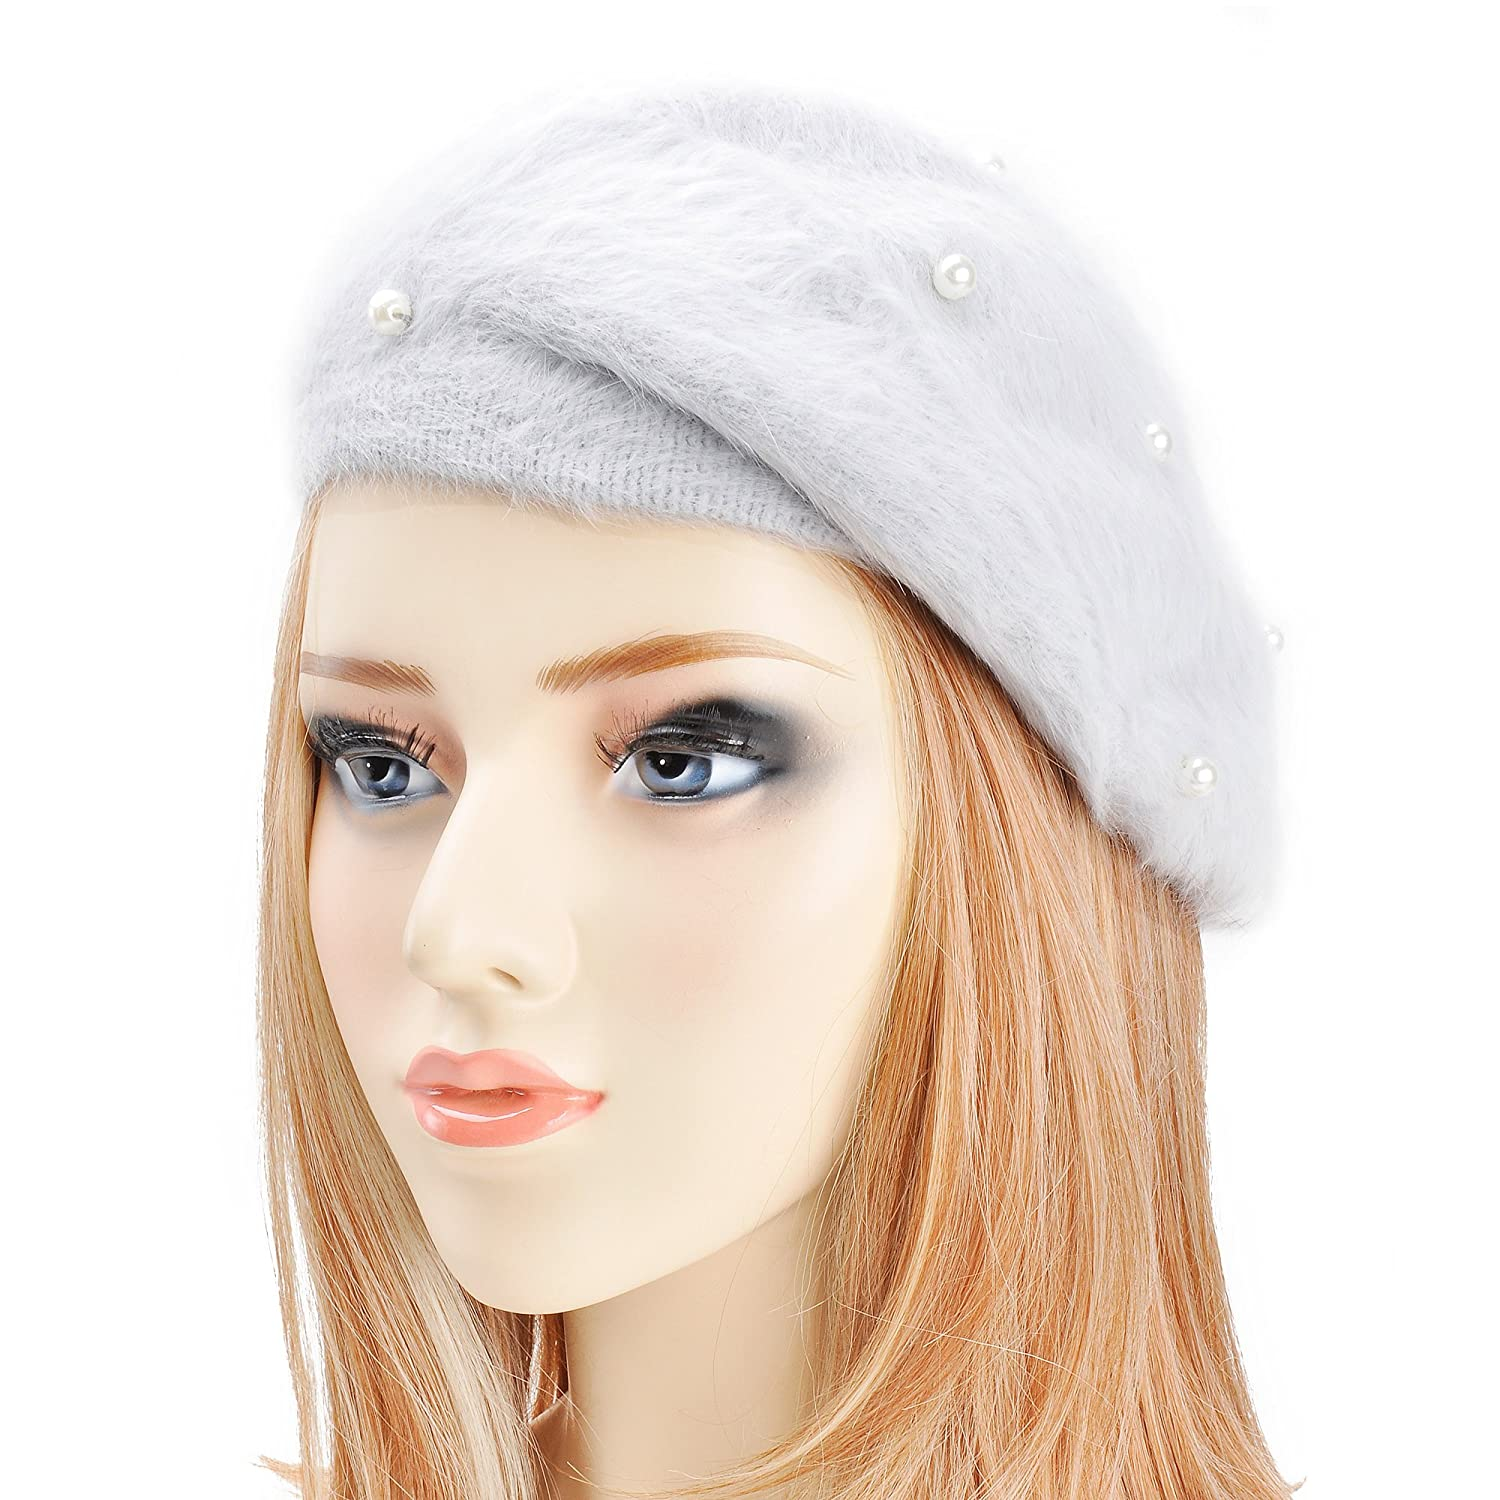 ZLYC Womens Rabbit Fur French Beret Hat with Pearl Ornament by ZYJ-MZ-100-BK